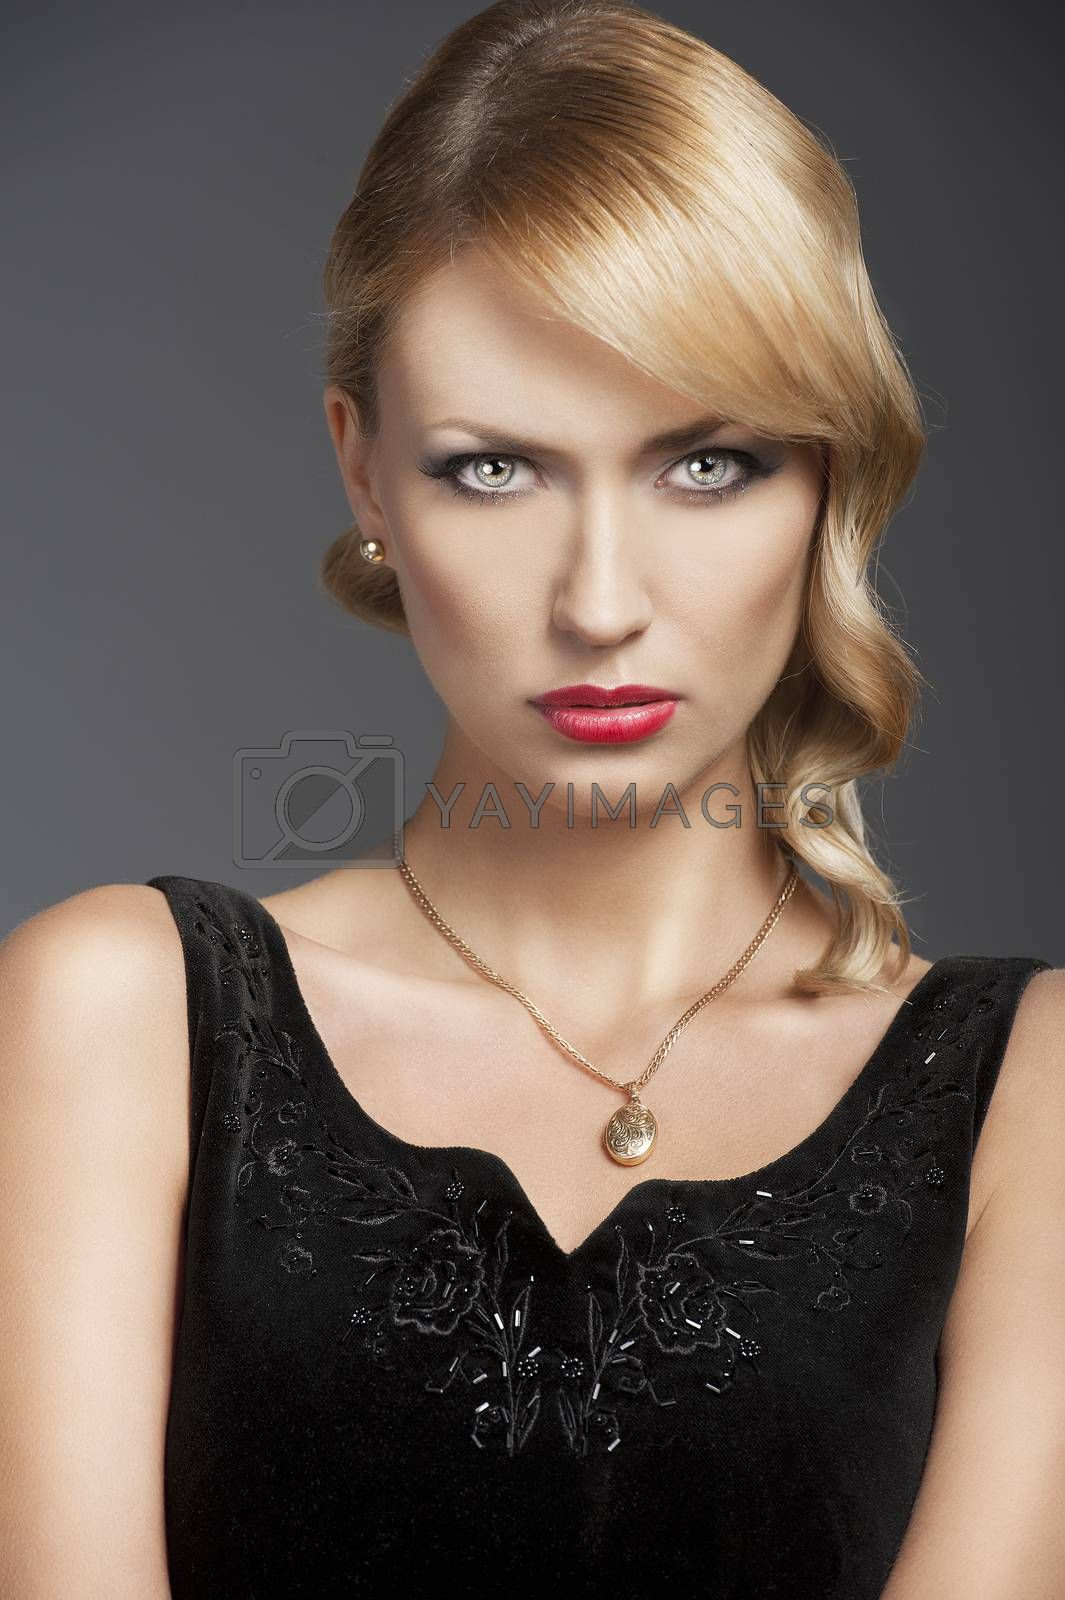 Royalty free image of old fashion blond girl, in front of the camera by fotoCD